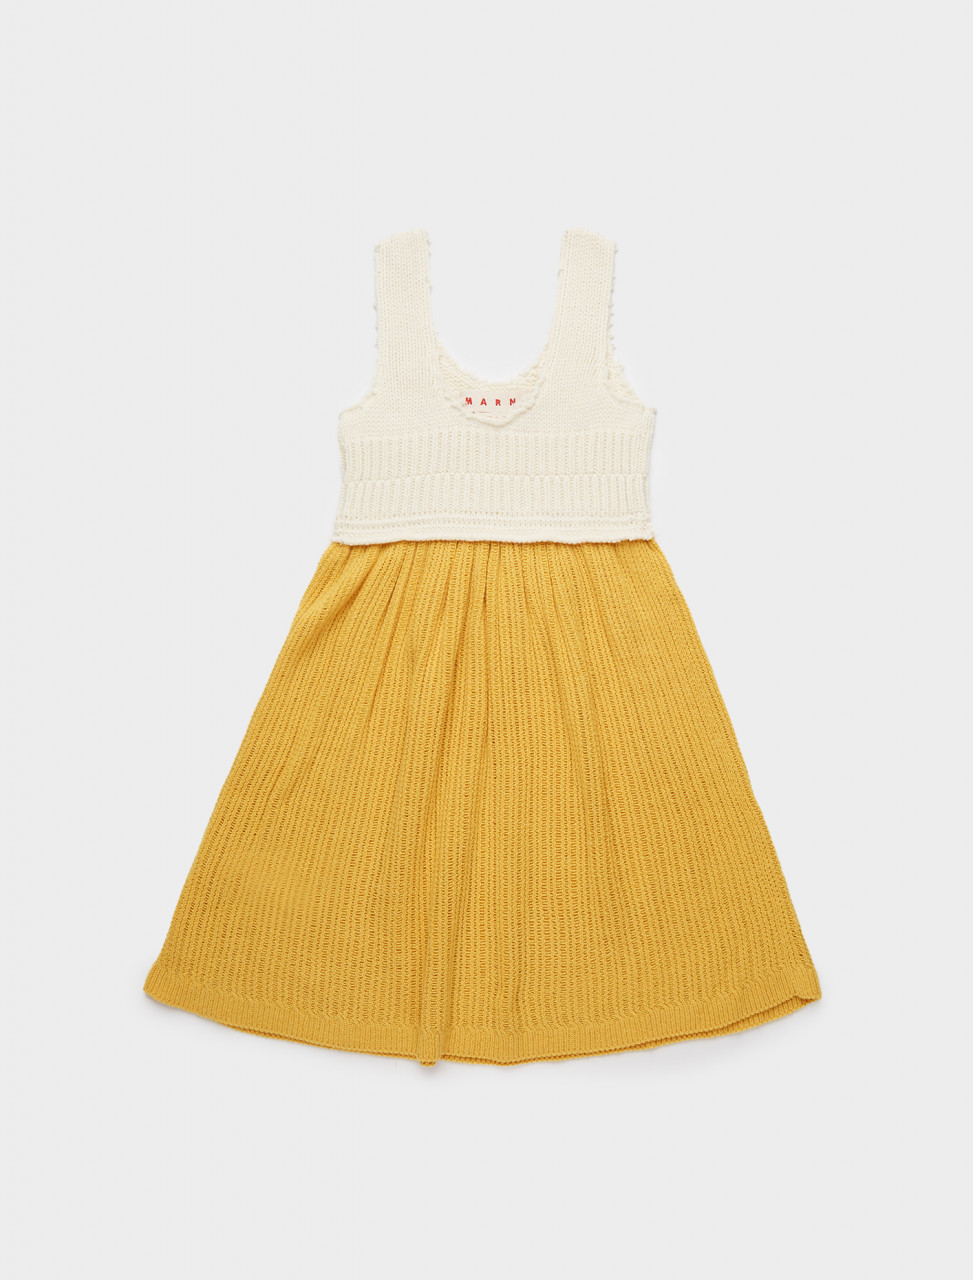 137-ABMD0082Q0-FZ405-BIY56 MARNI SLEEVELESS KNITTED DRESS MAIZE